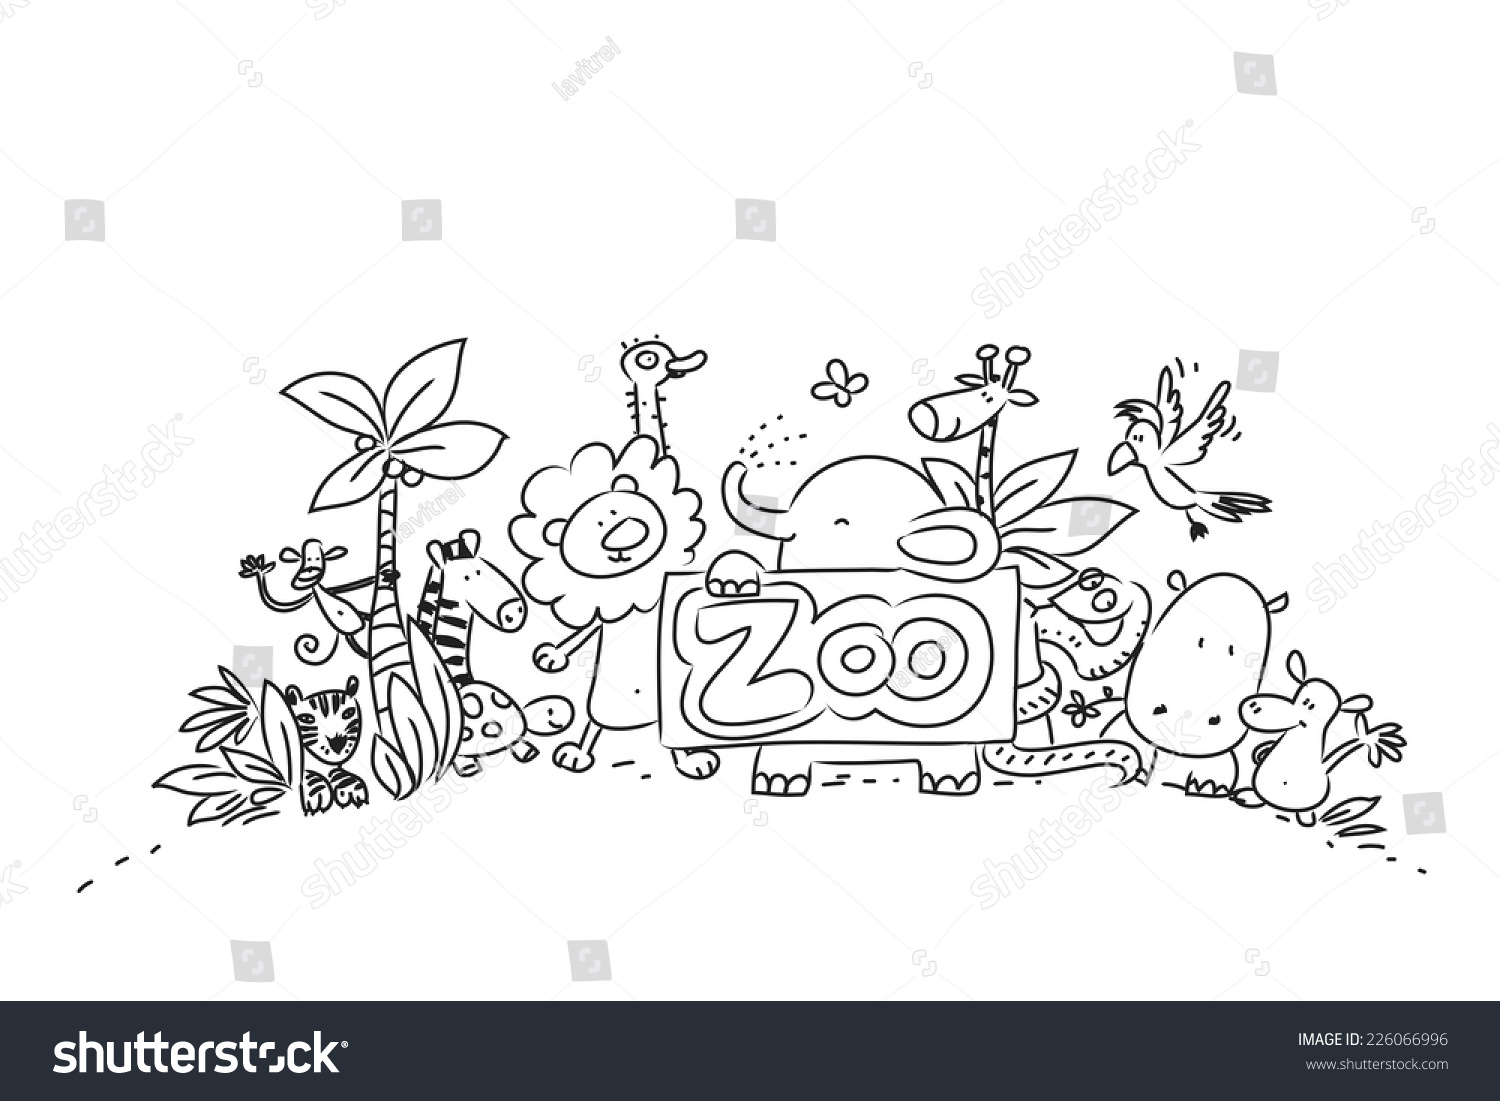 Line Drawing Zoo : Cute zoo animals vector illustration line stock